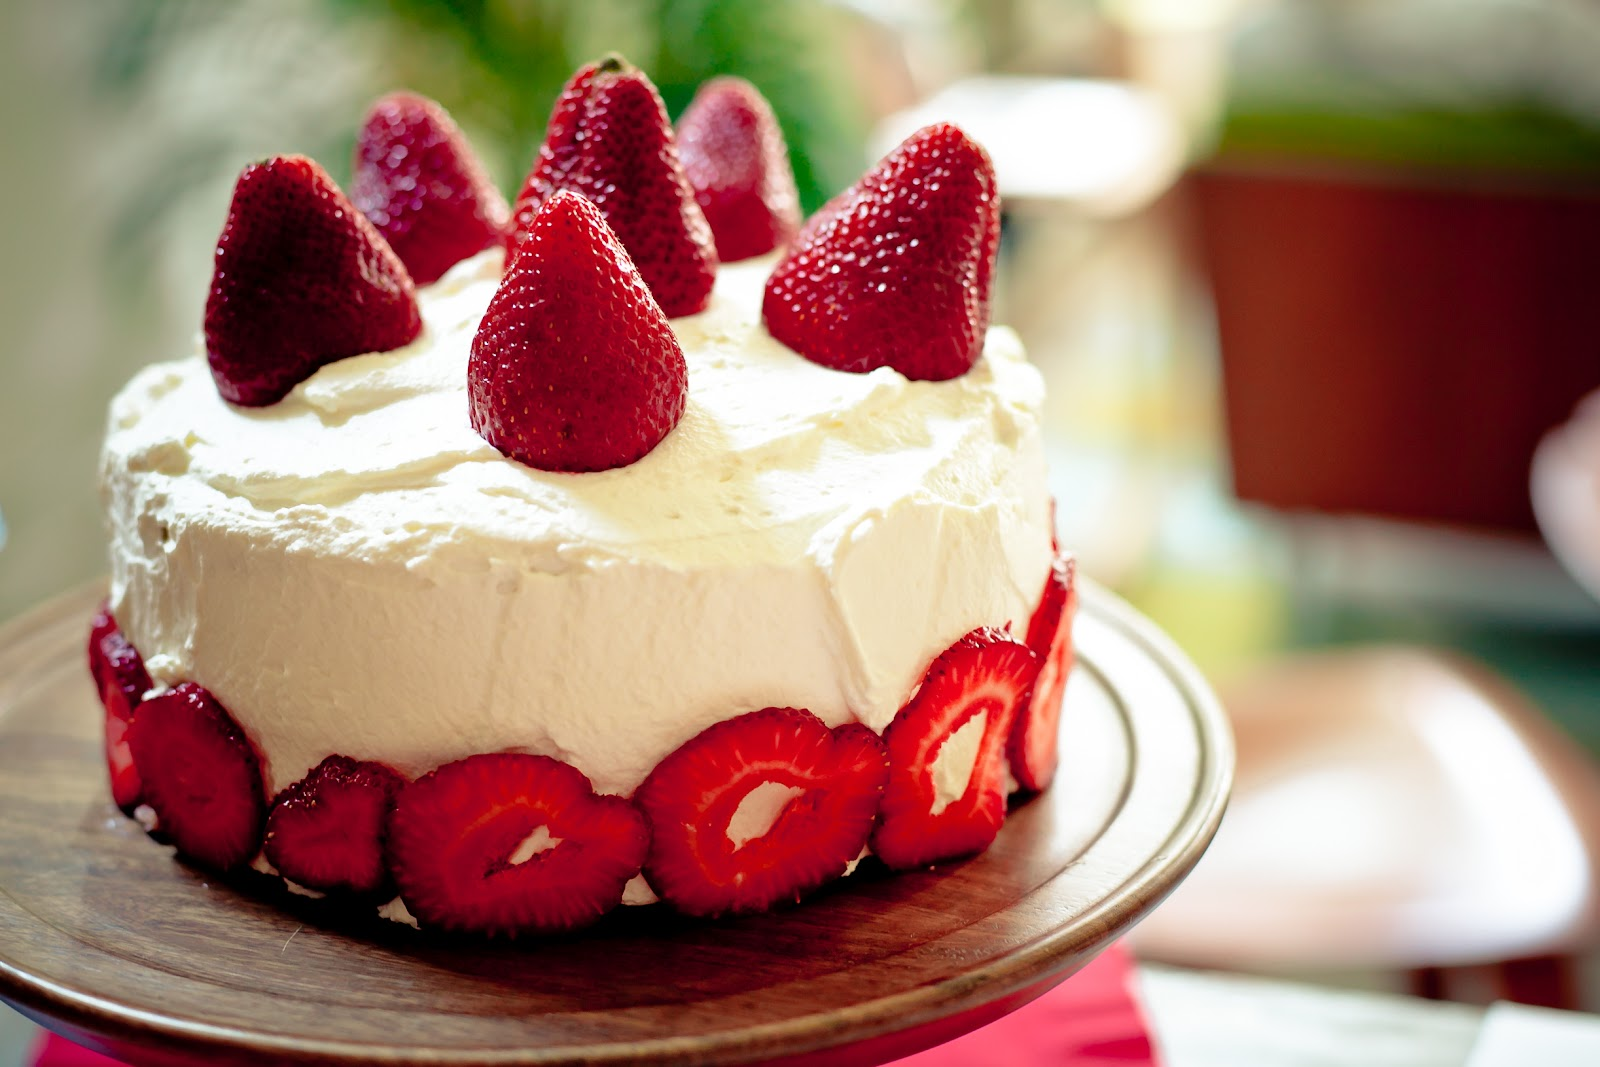 Fresh Strawberry Cake with Pastry Cream and Mascarpone Whipped Cream